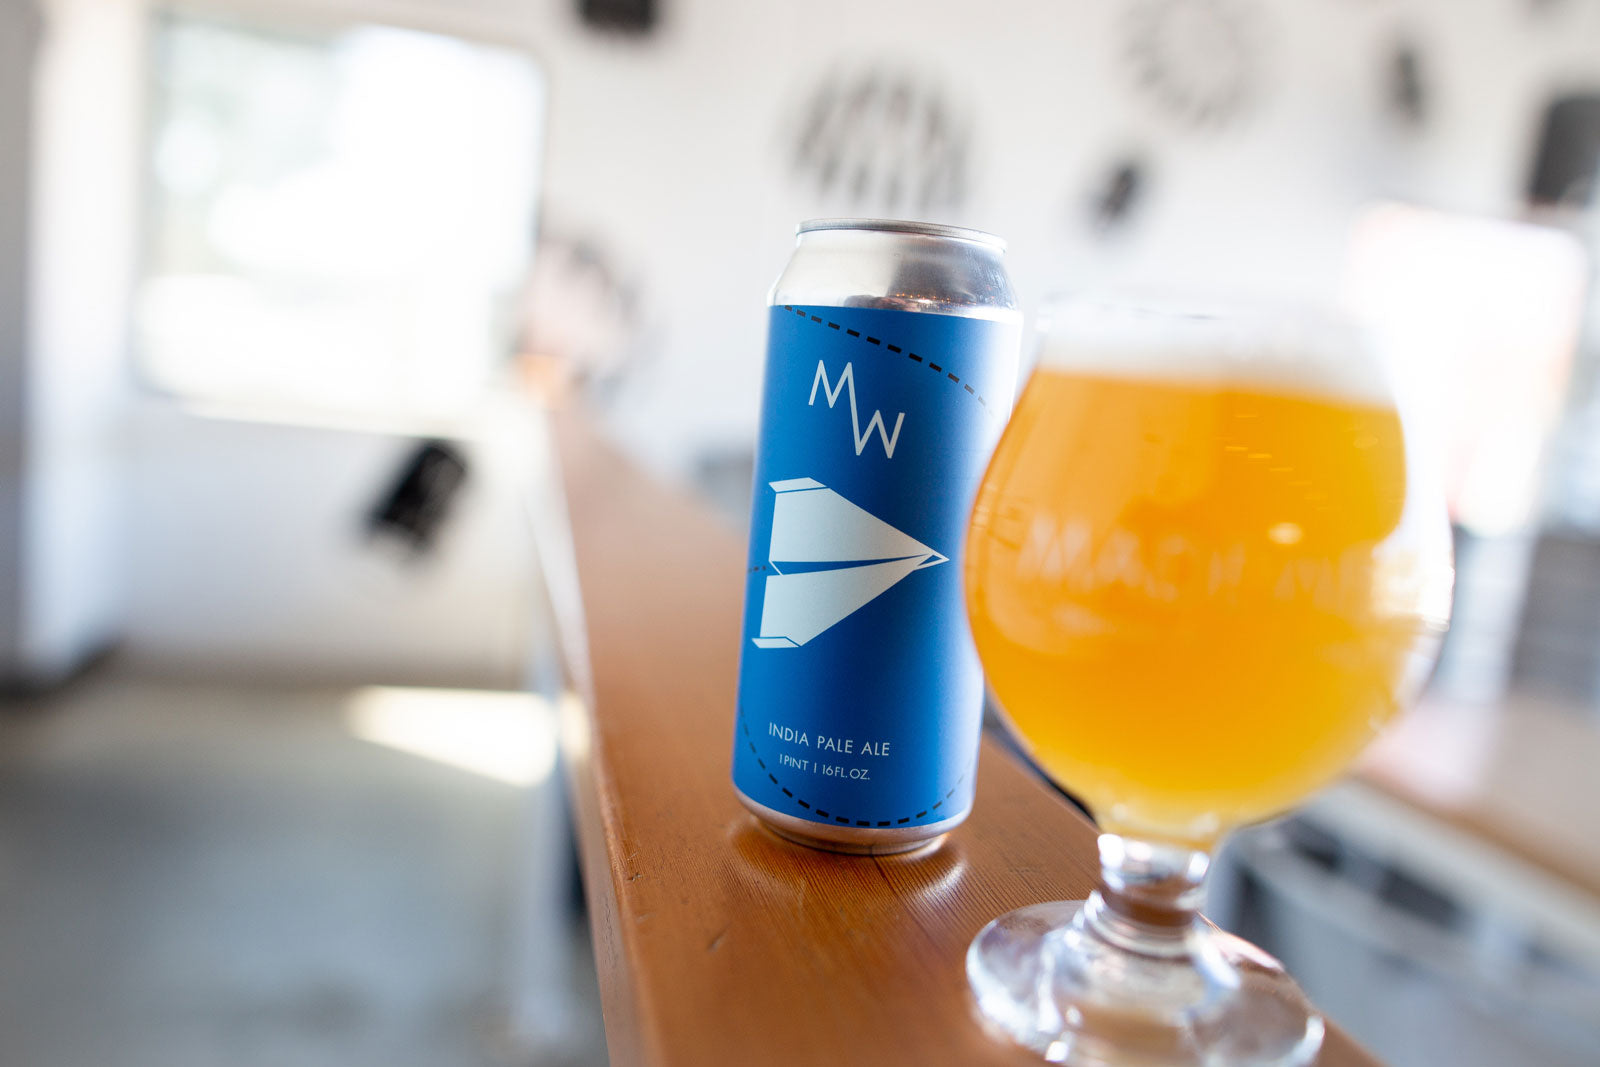 Hazy IPA can release